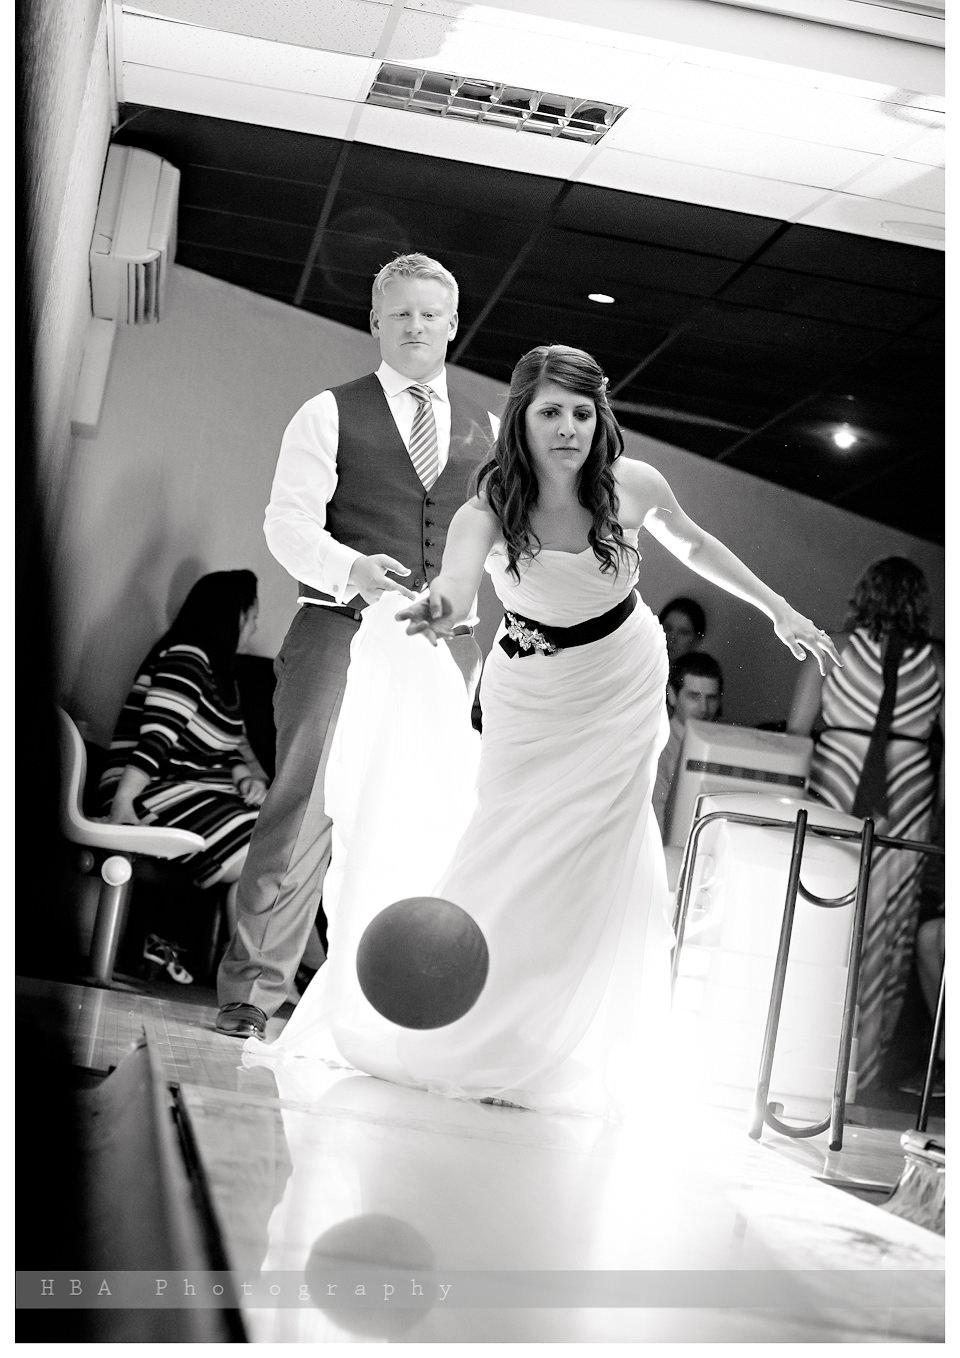 The wedding of Josey & Sam at Hellidon Lakes Golf & Spa Hotel, by contemporary Derbyshire photographers HBA Photography. A bit of bowling after dinner